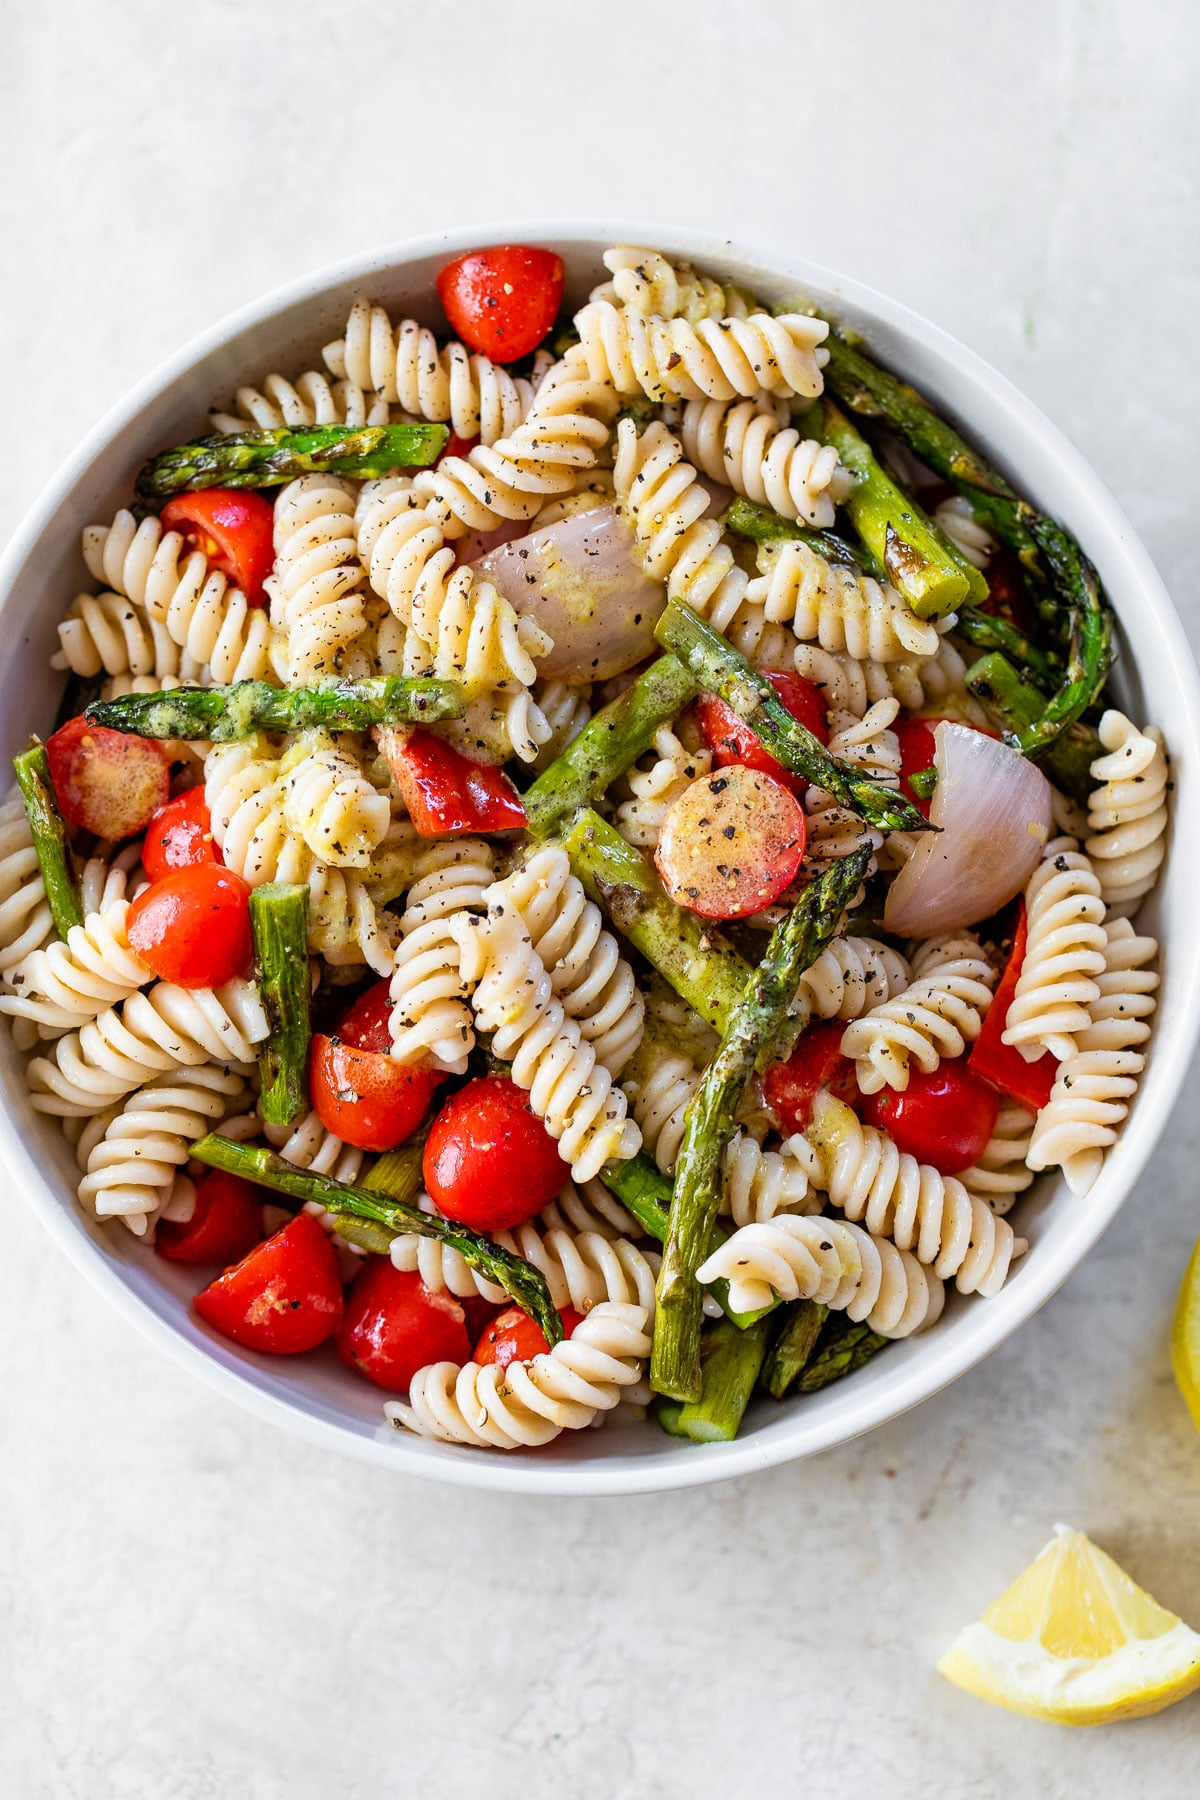 large white bowl with grilled asparagus, rotini pasta and other vegetables